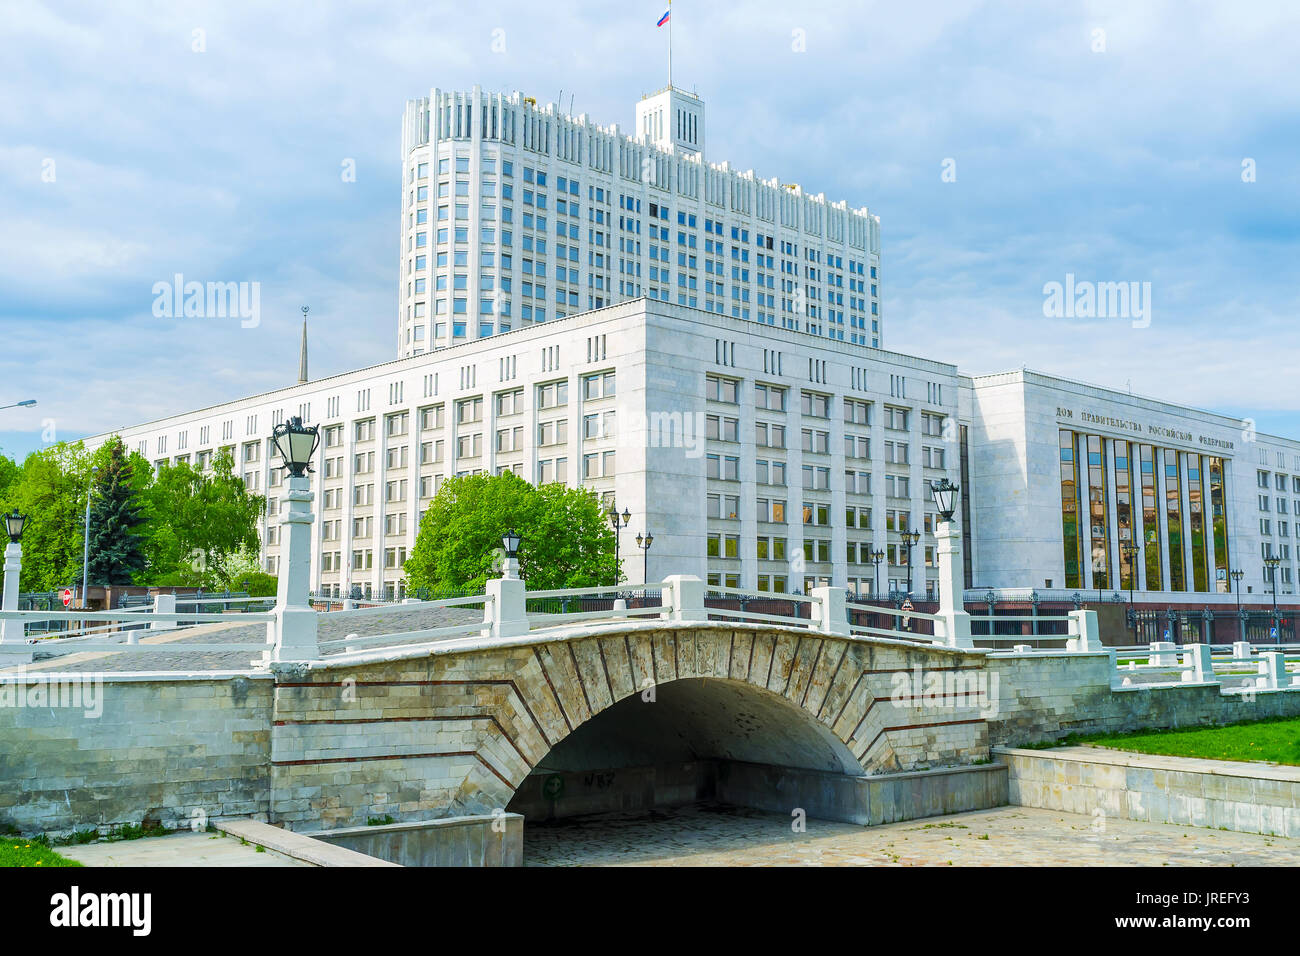 MOSCOW, RUSSIA - MAY 11, 2015: The small humpbacked bridge over non-existent riverbed Presnya, located next to the Government building, on May 11 in M - Stock Image